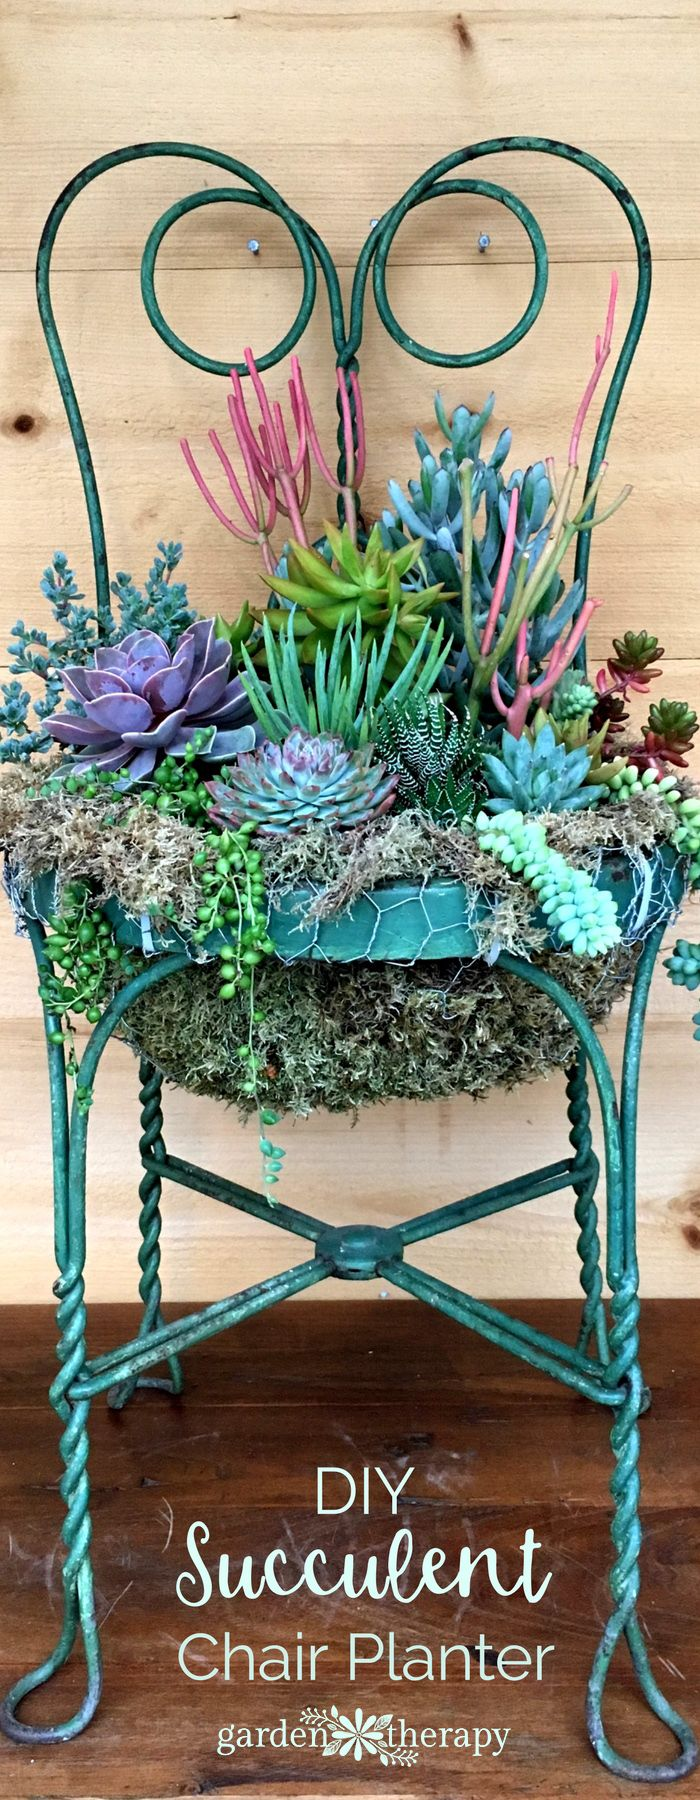 Set A Place In The Garden For Succulent Chair Planter Container Here39s Breadboardlook Of How It39s Hooked Up